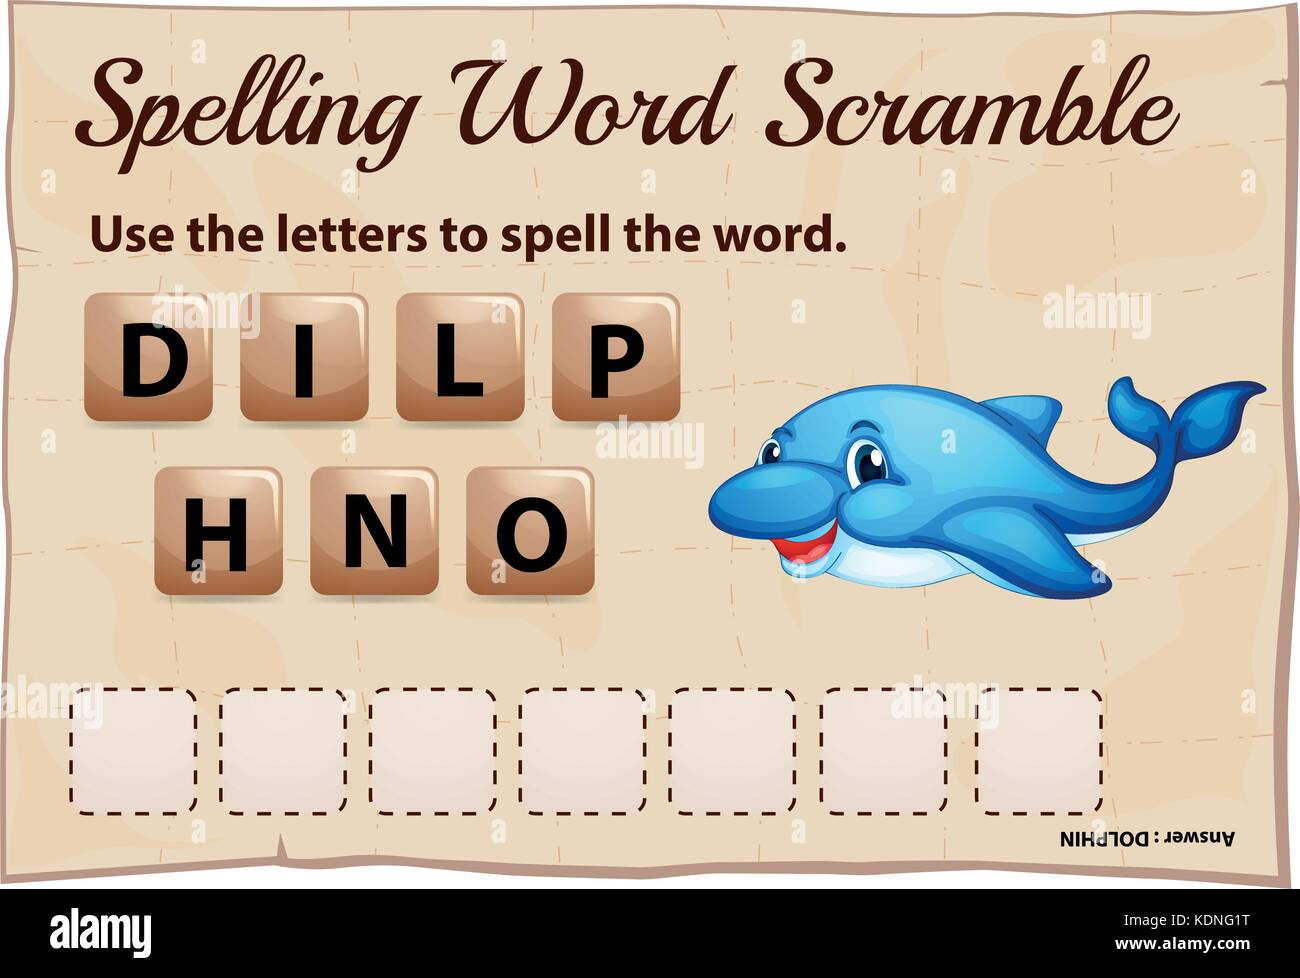 Spelling word scramble template for dolphin illustration Stock ...